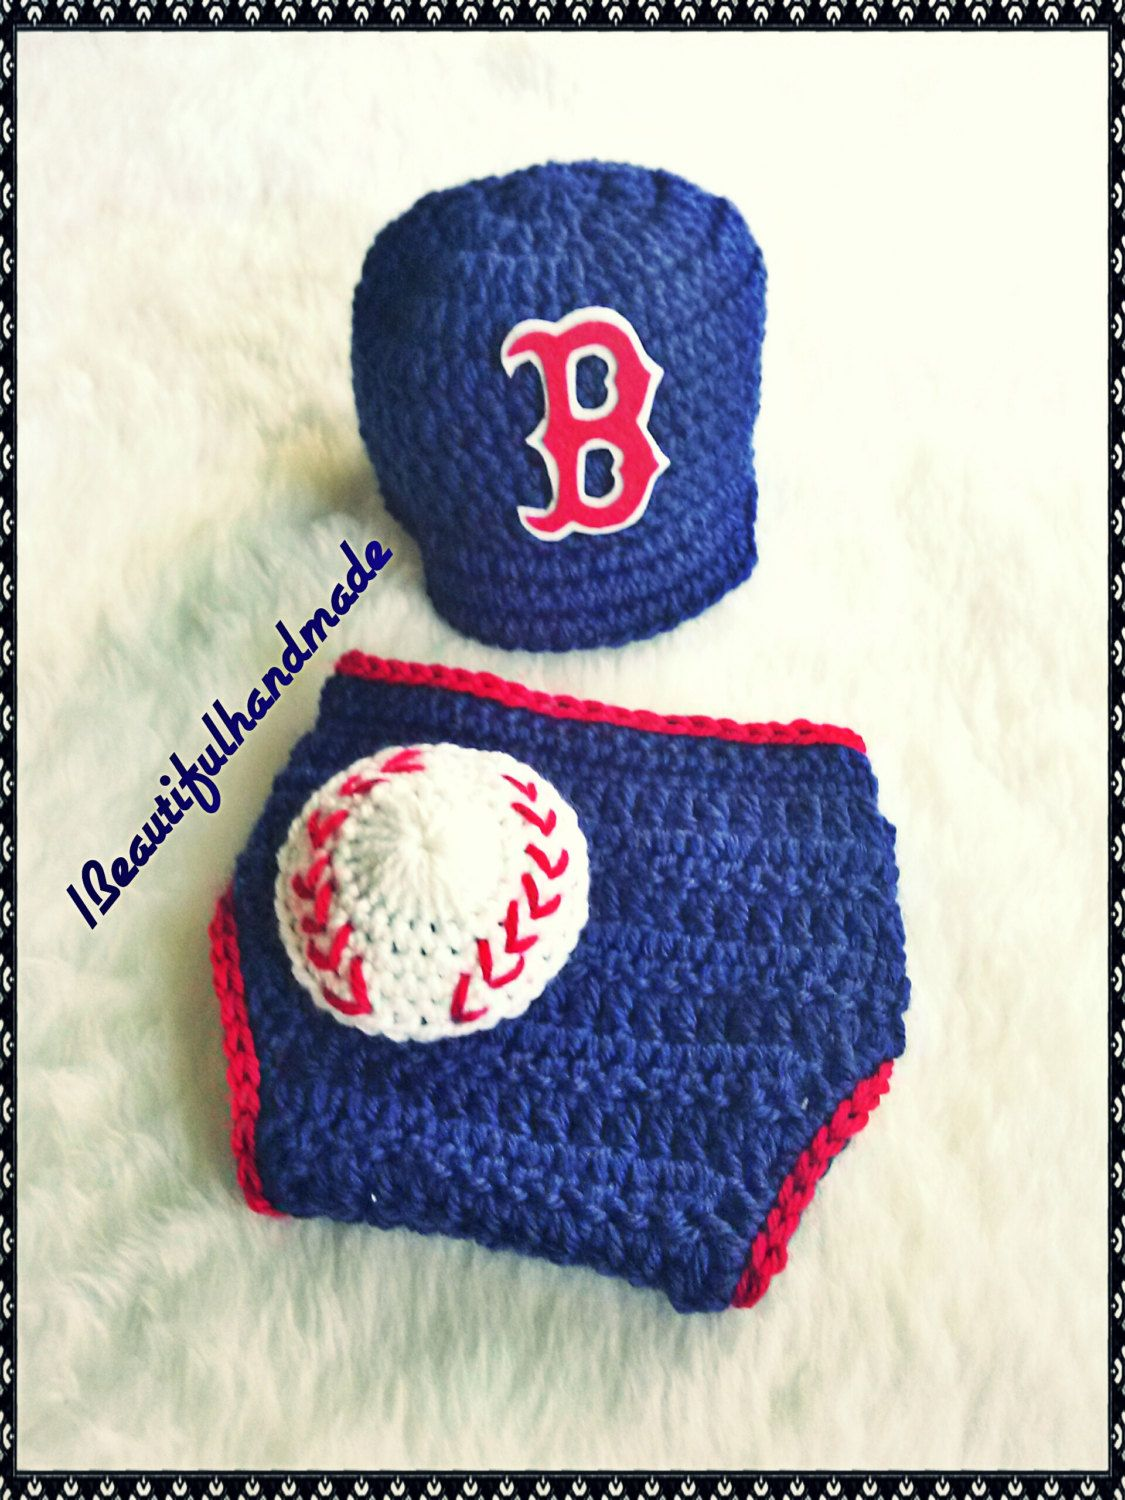 4432f1c50 ... baby boy crochet boston red sox baseball cap diaper covercrochet  newborn hatnewborn photography prop ...